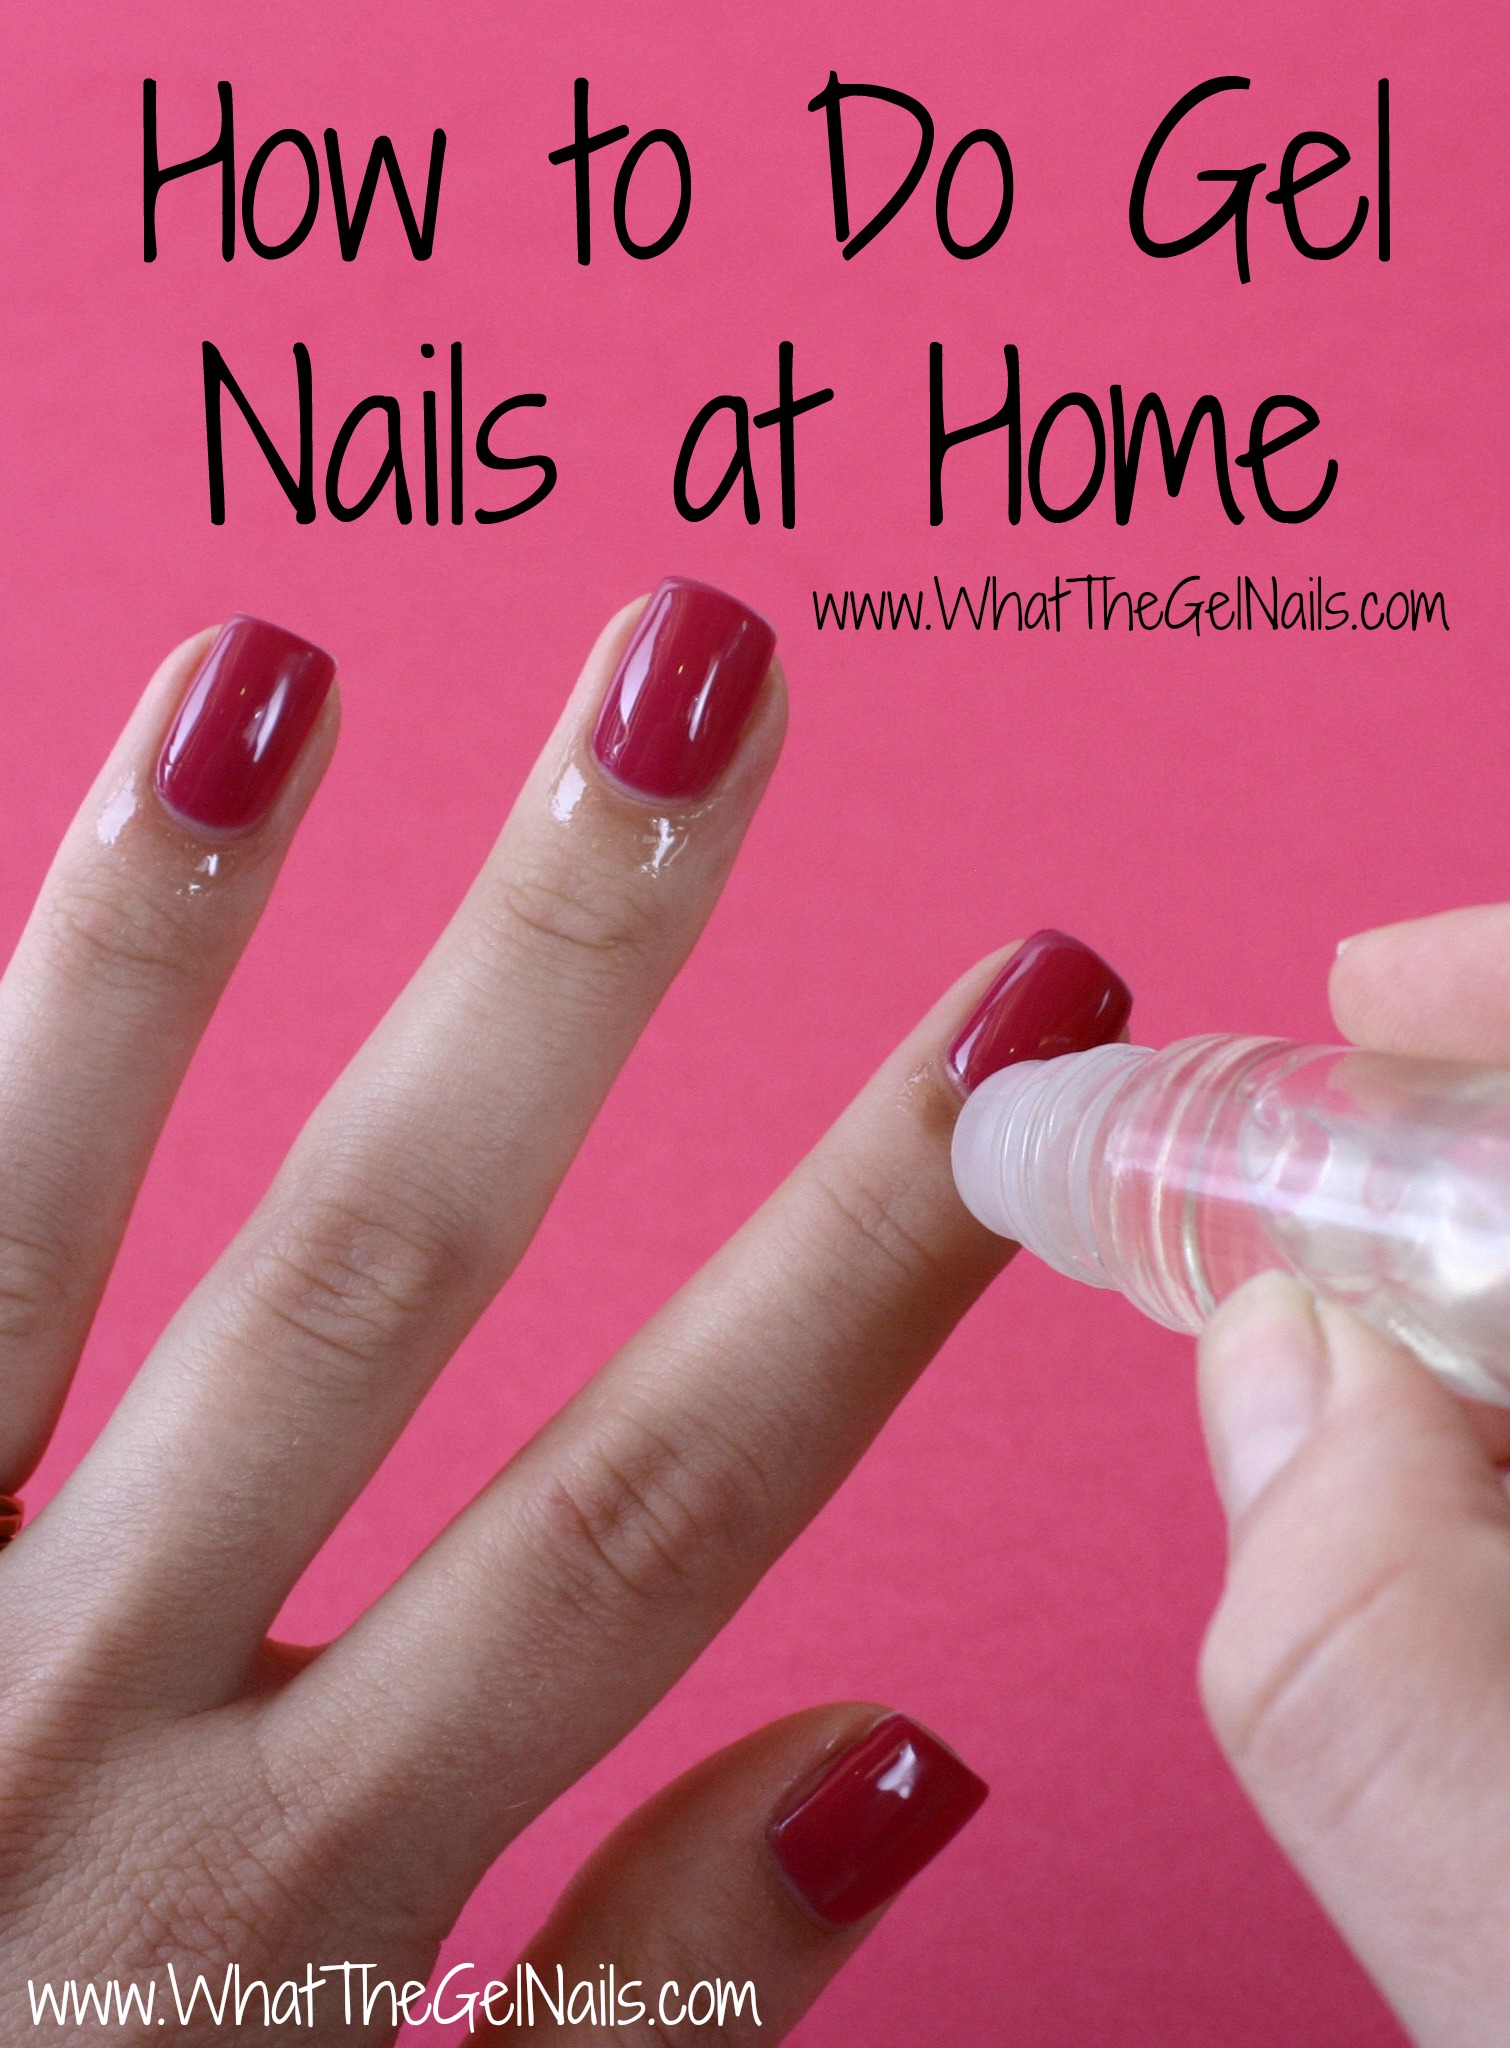 How-to-Do-Gel-Nails.jpg